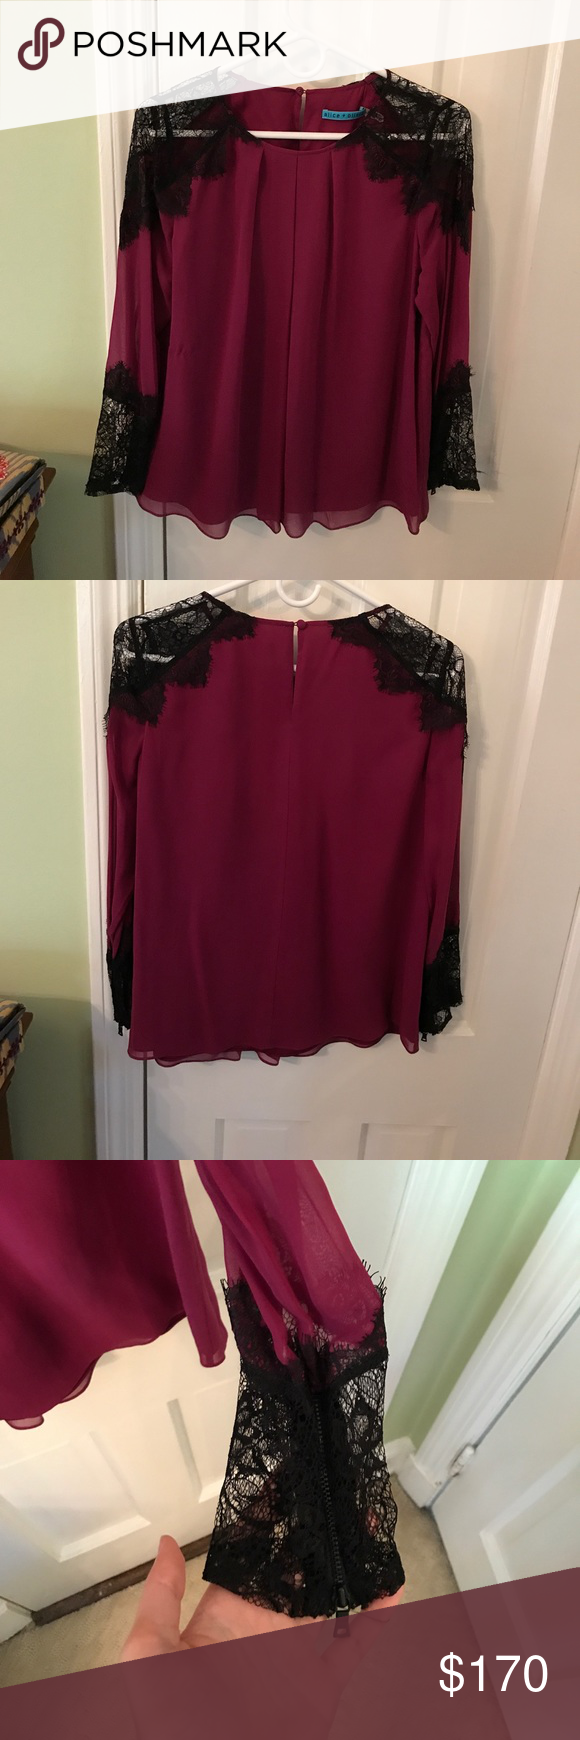 Alice and Olivia Sofia Blouse in wine size small Alice and Olivia Sofia lace trim blouse in size small. Body is lined and sleeves are sheer. Black lace trim at shoulders and sleeves. 100% silk. Color is a wine/deep raspberry Alice + Olivia Tops Blouses